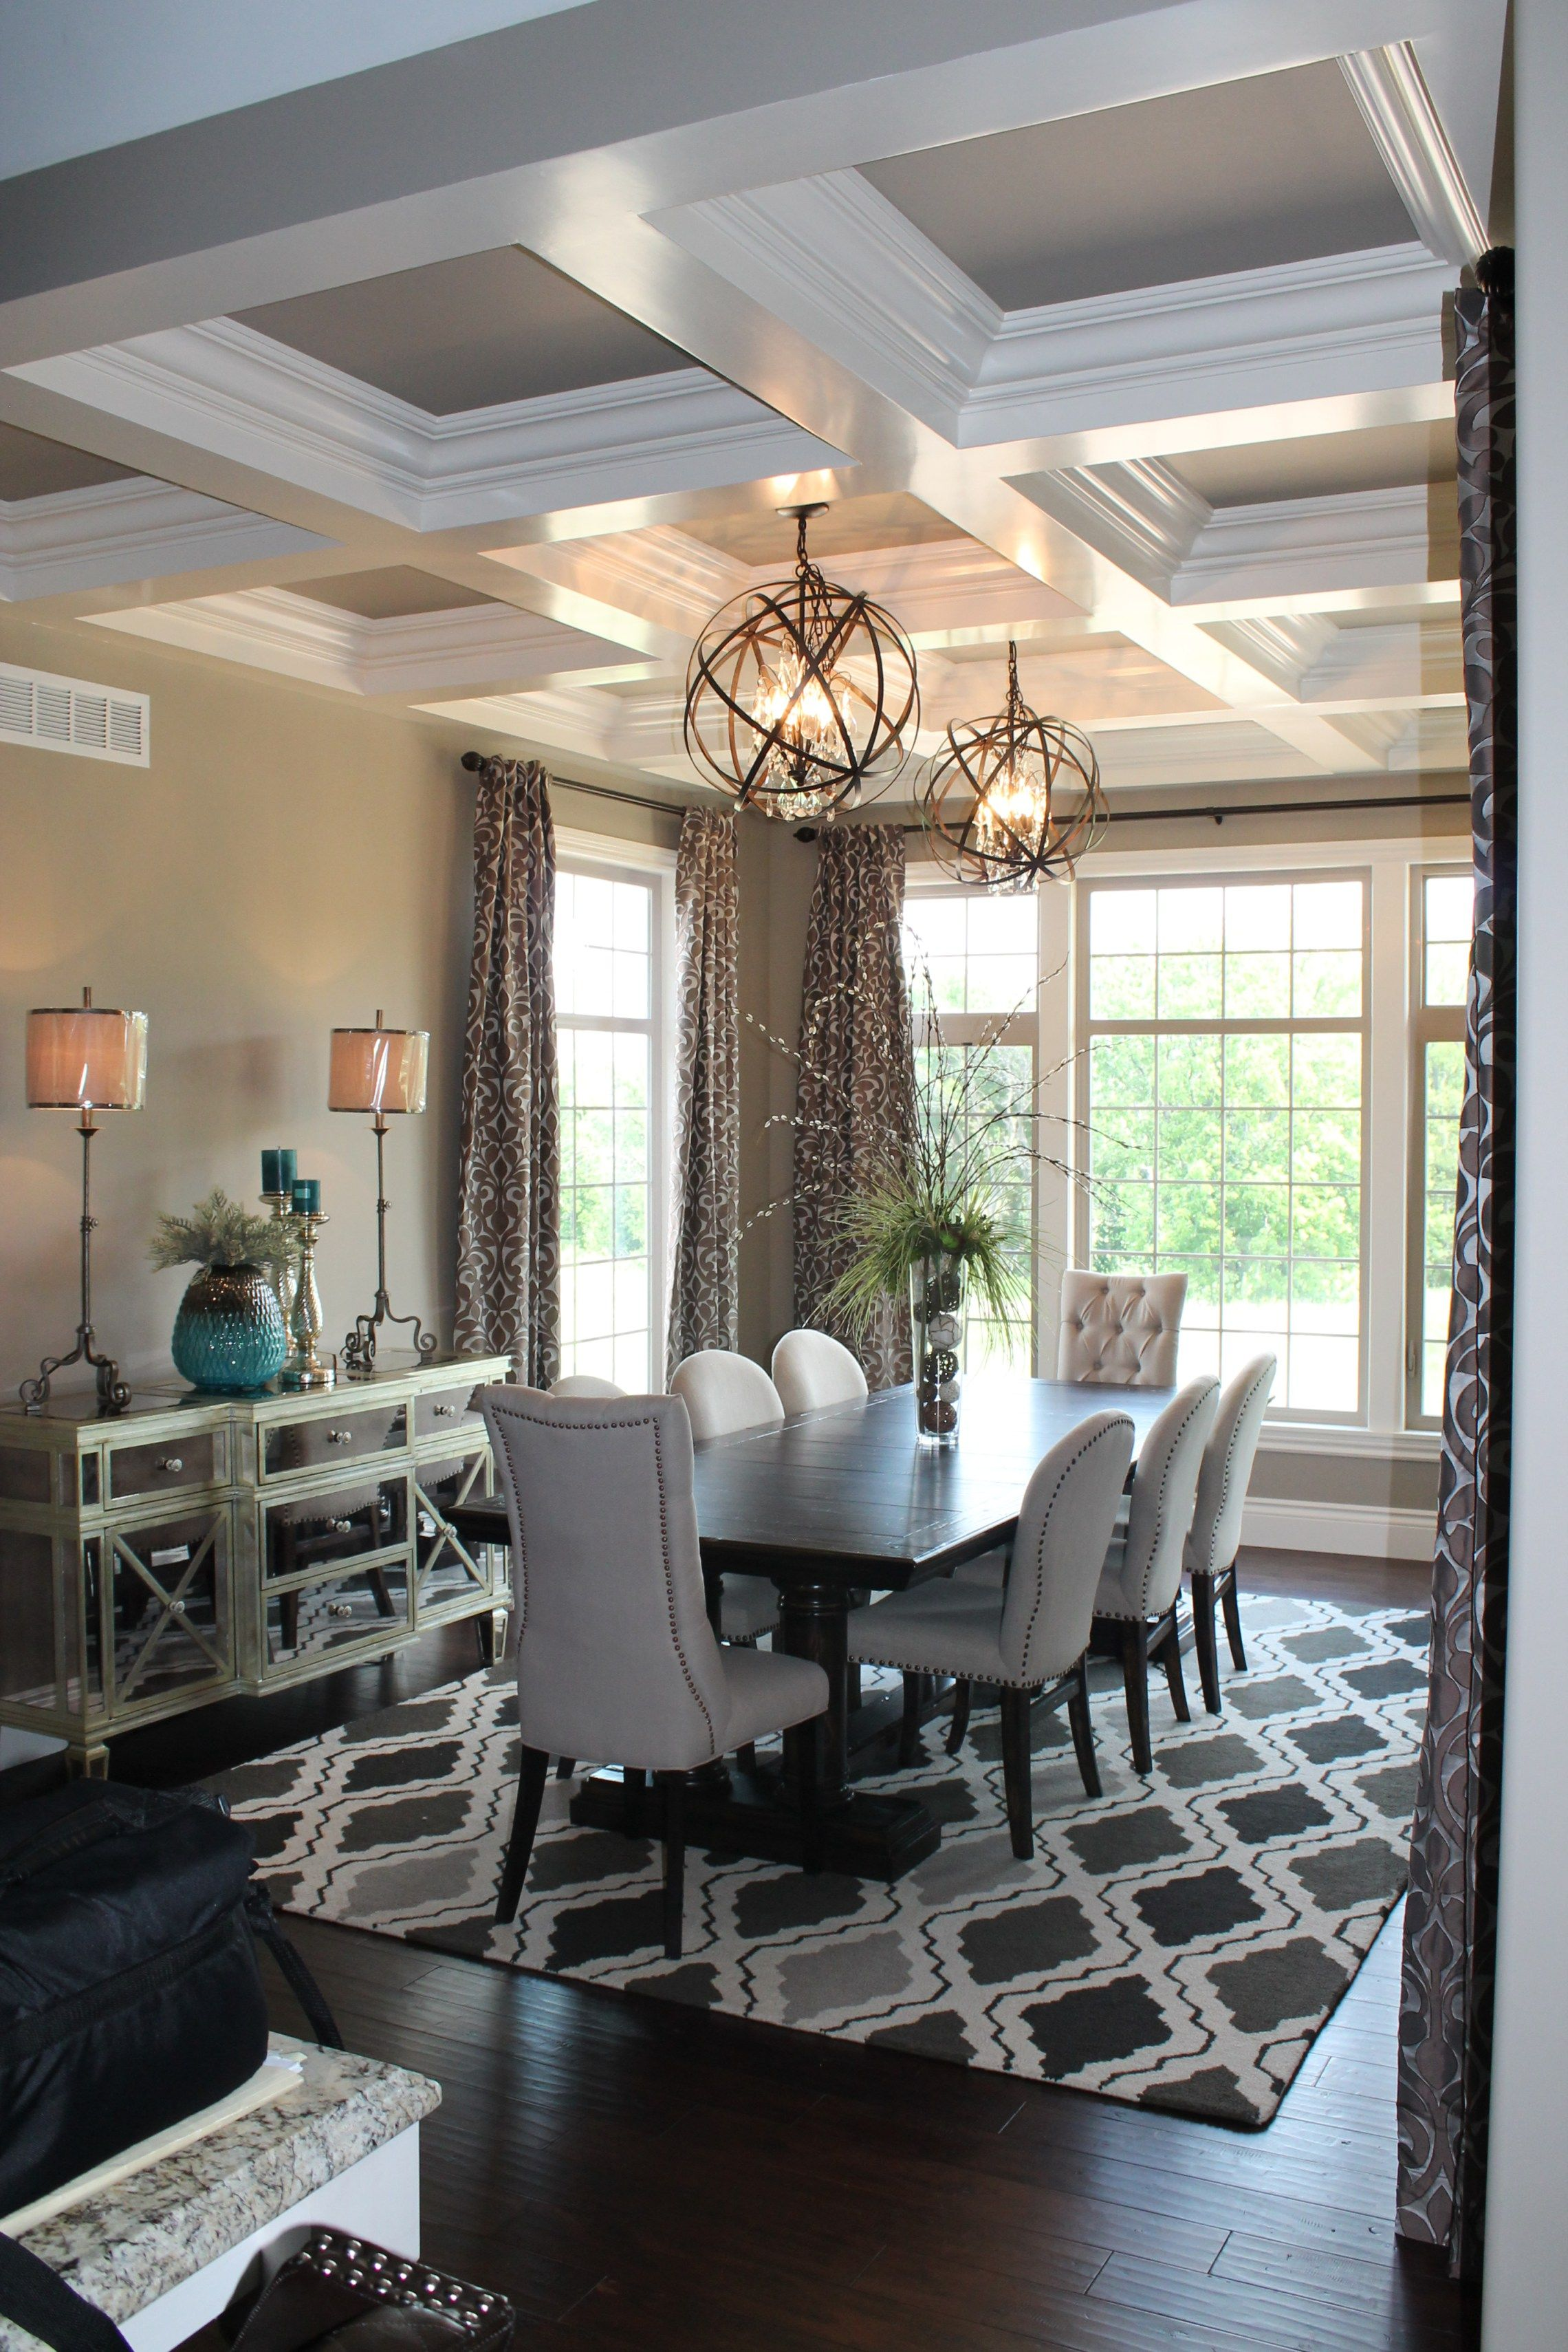 5 Easy Tips to Master Transitional Design | Dining room ...